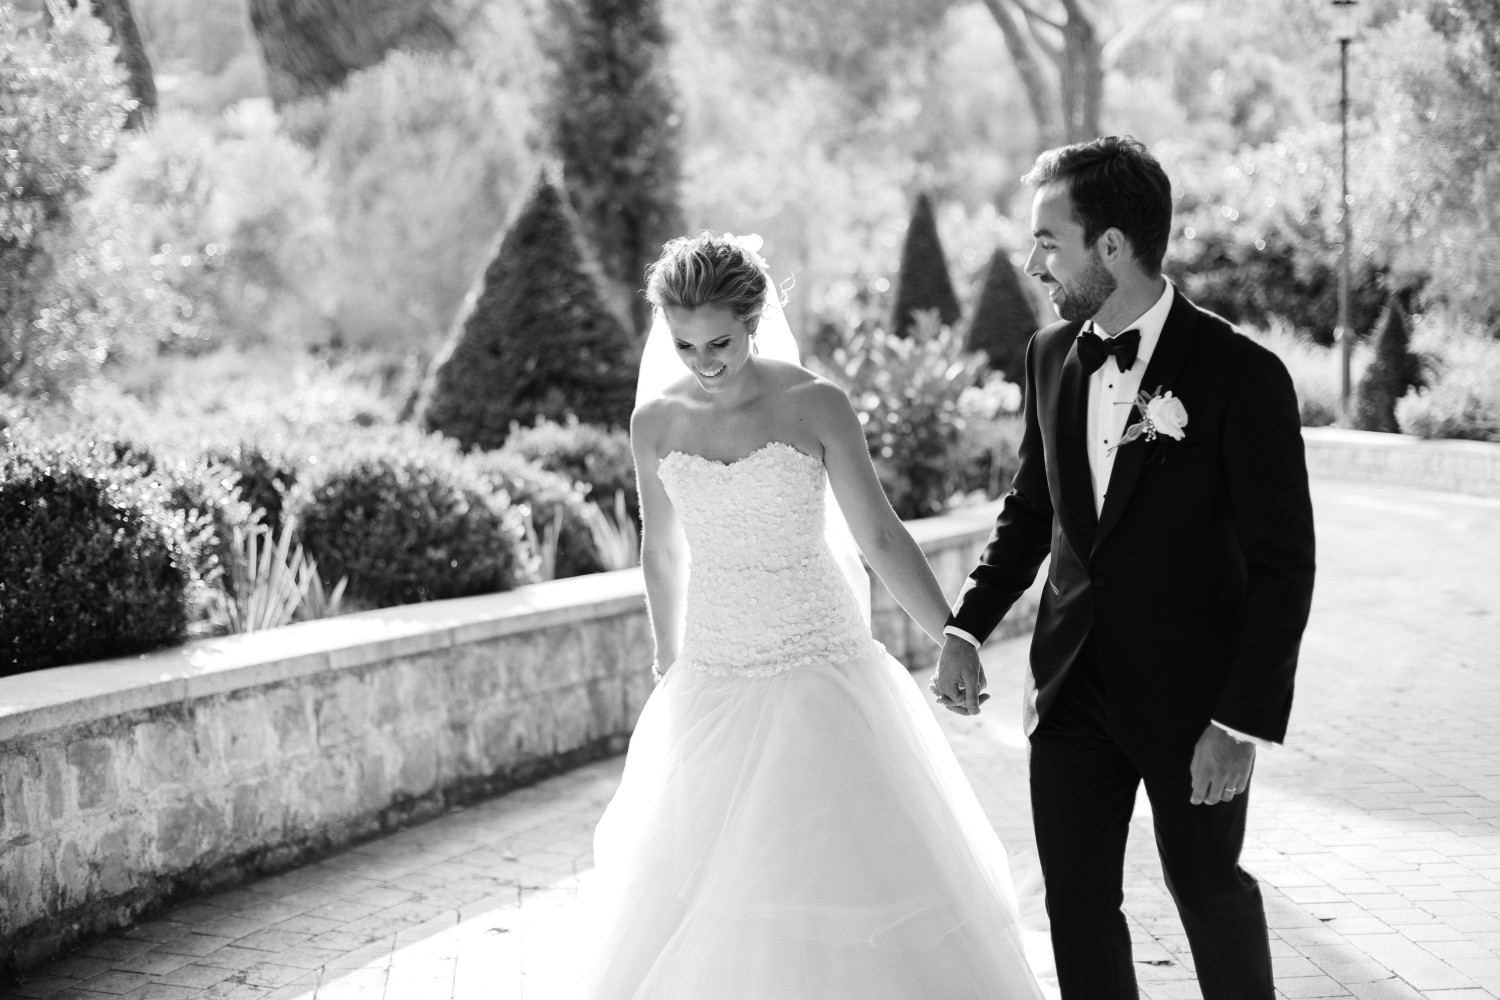 Airsnap, wedding photography and videography — Emily & Chris, Château Saint Jeannet, French Riviera